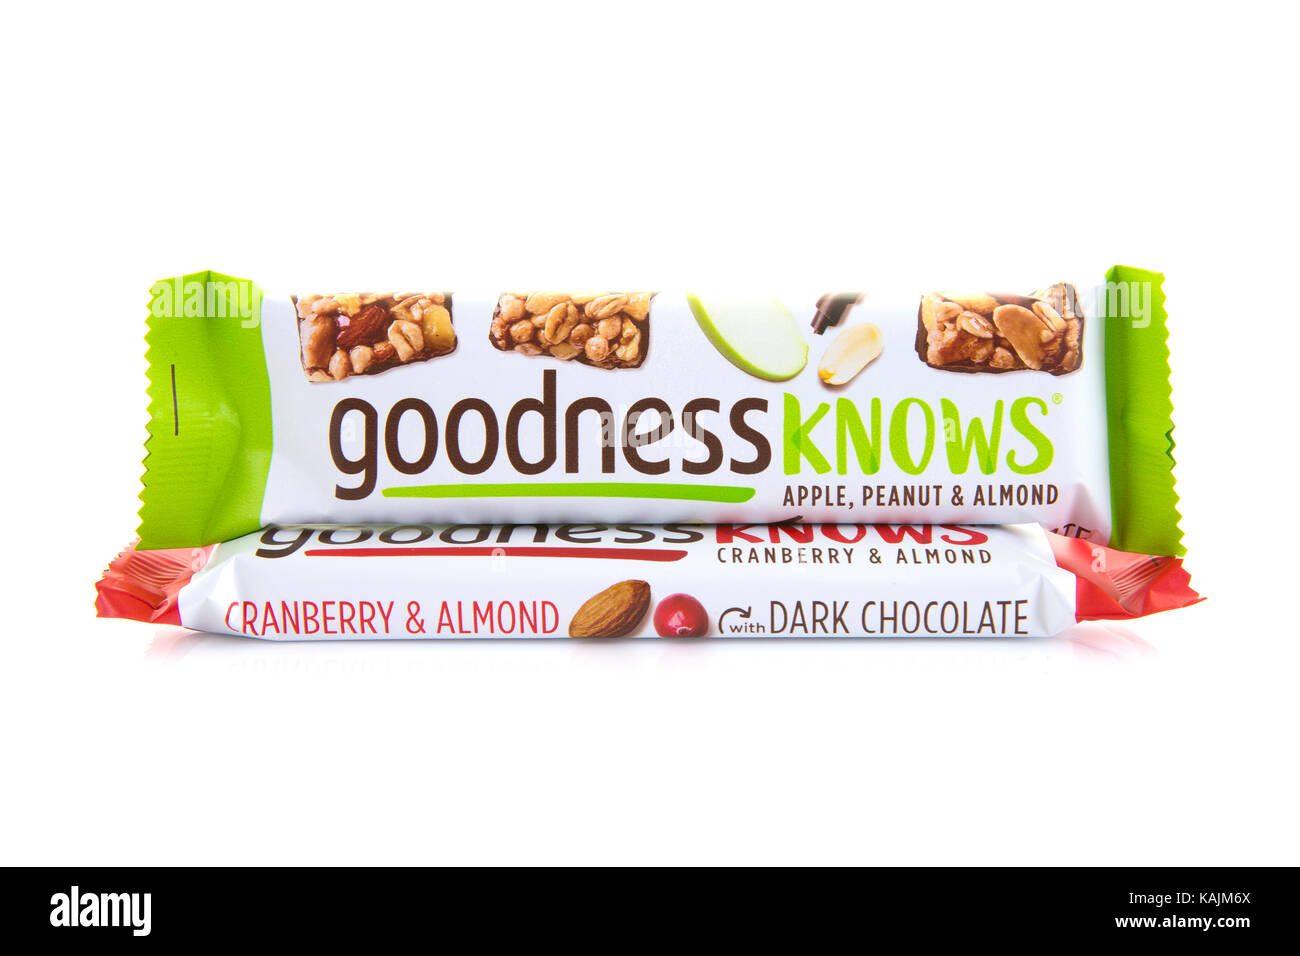 SWINDON, UK - SEPTEMBER 26, 2017: Two Goodness Knows Snack Bars on a white background - Stock Image